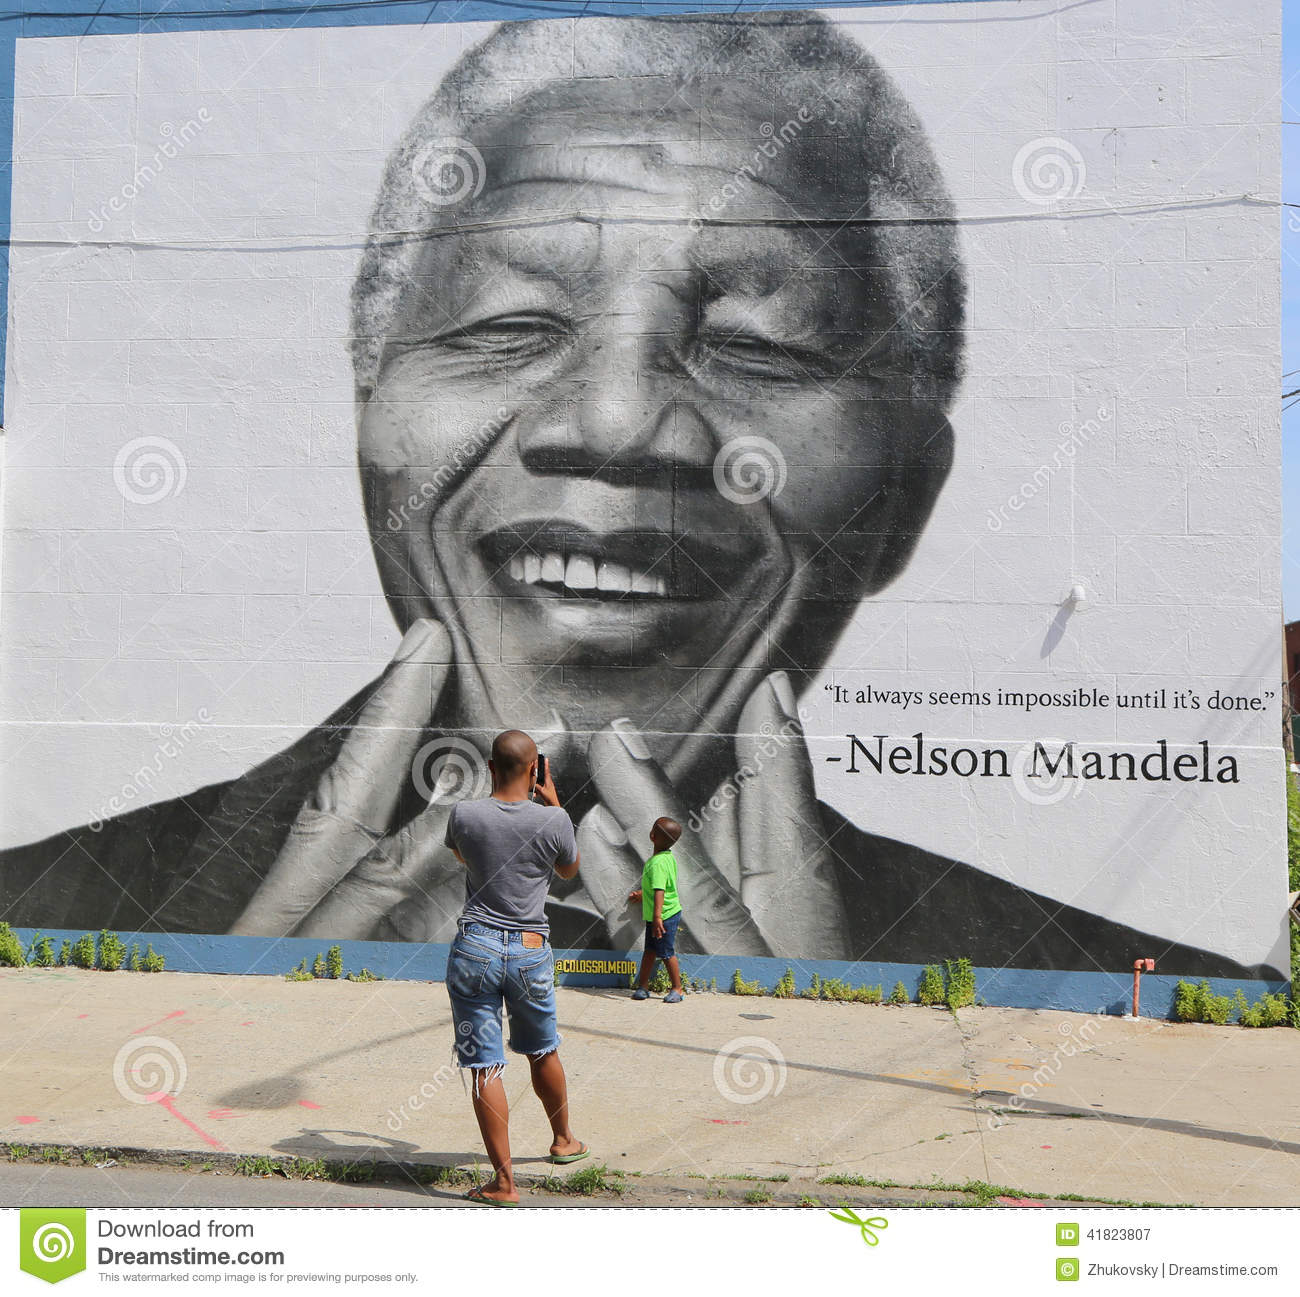 Unidentified family taken picture in the front of Nelson Mandela mural in Williamsburg section in Brooklyn